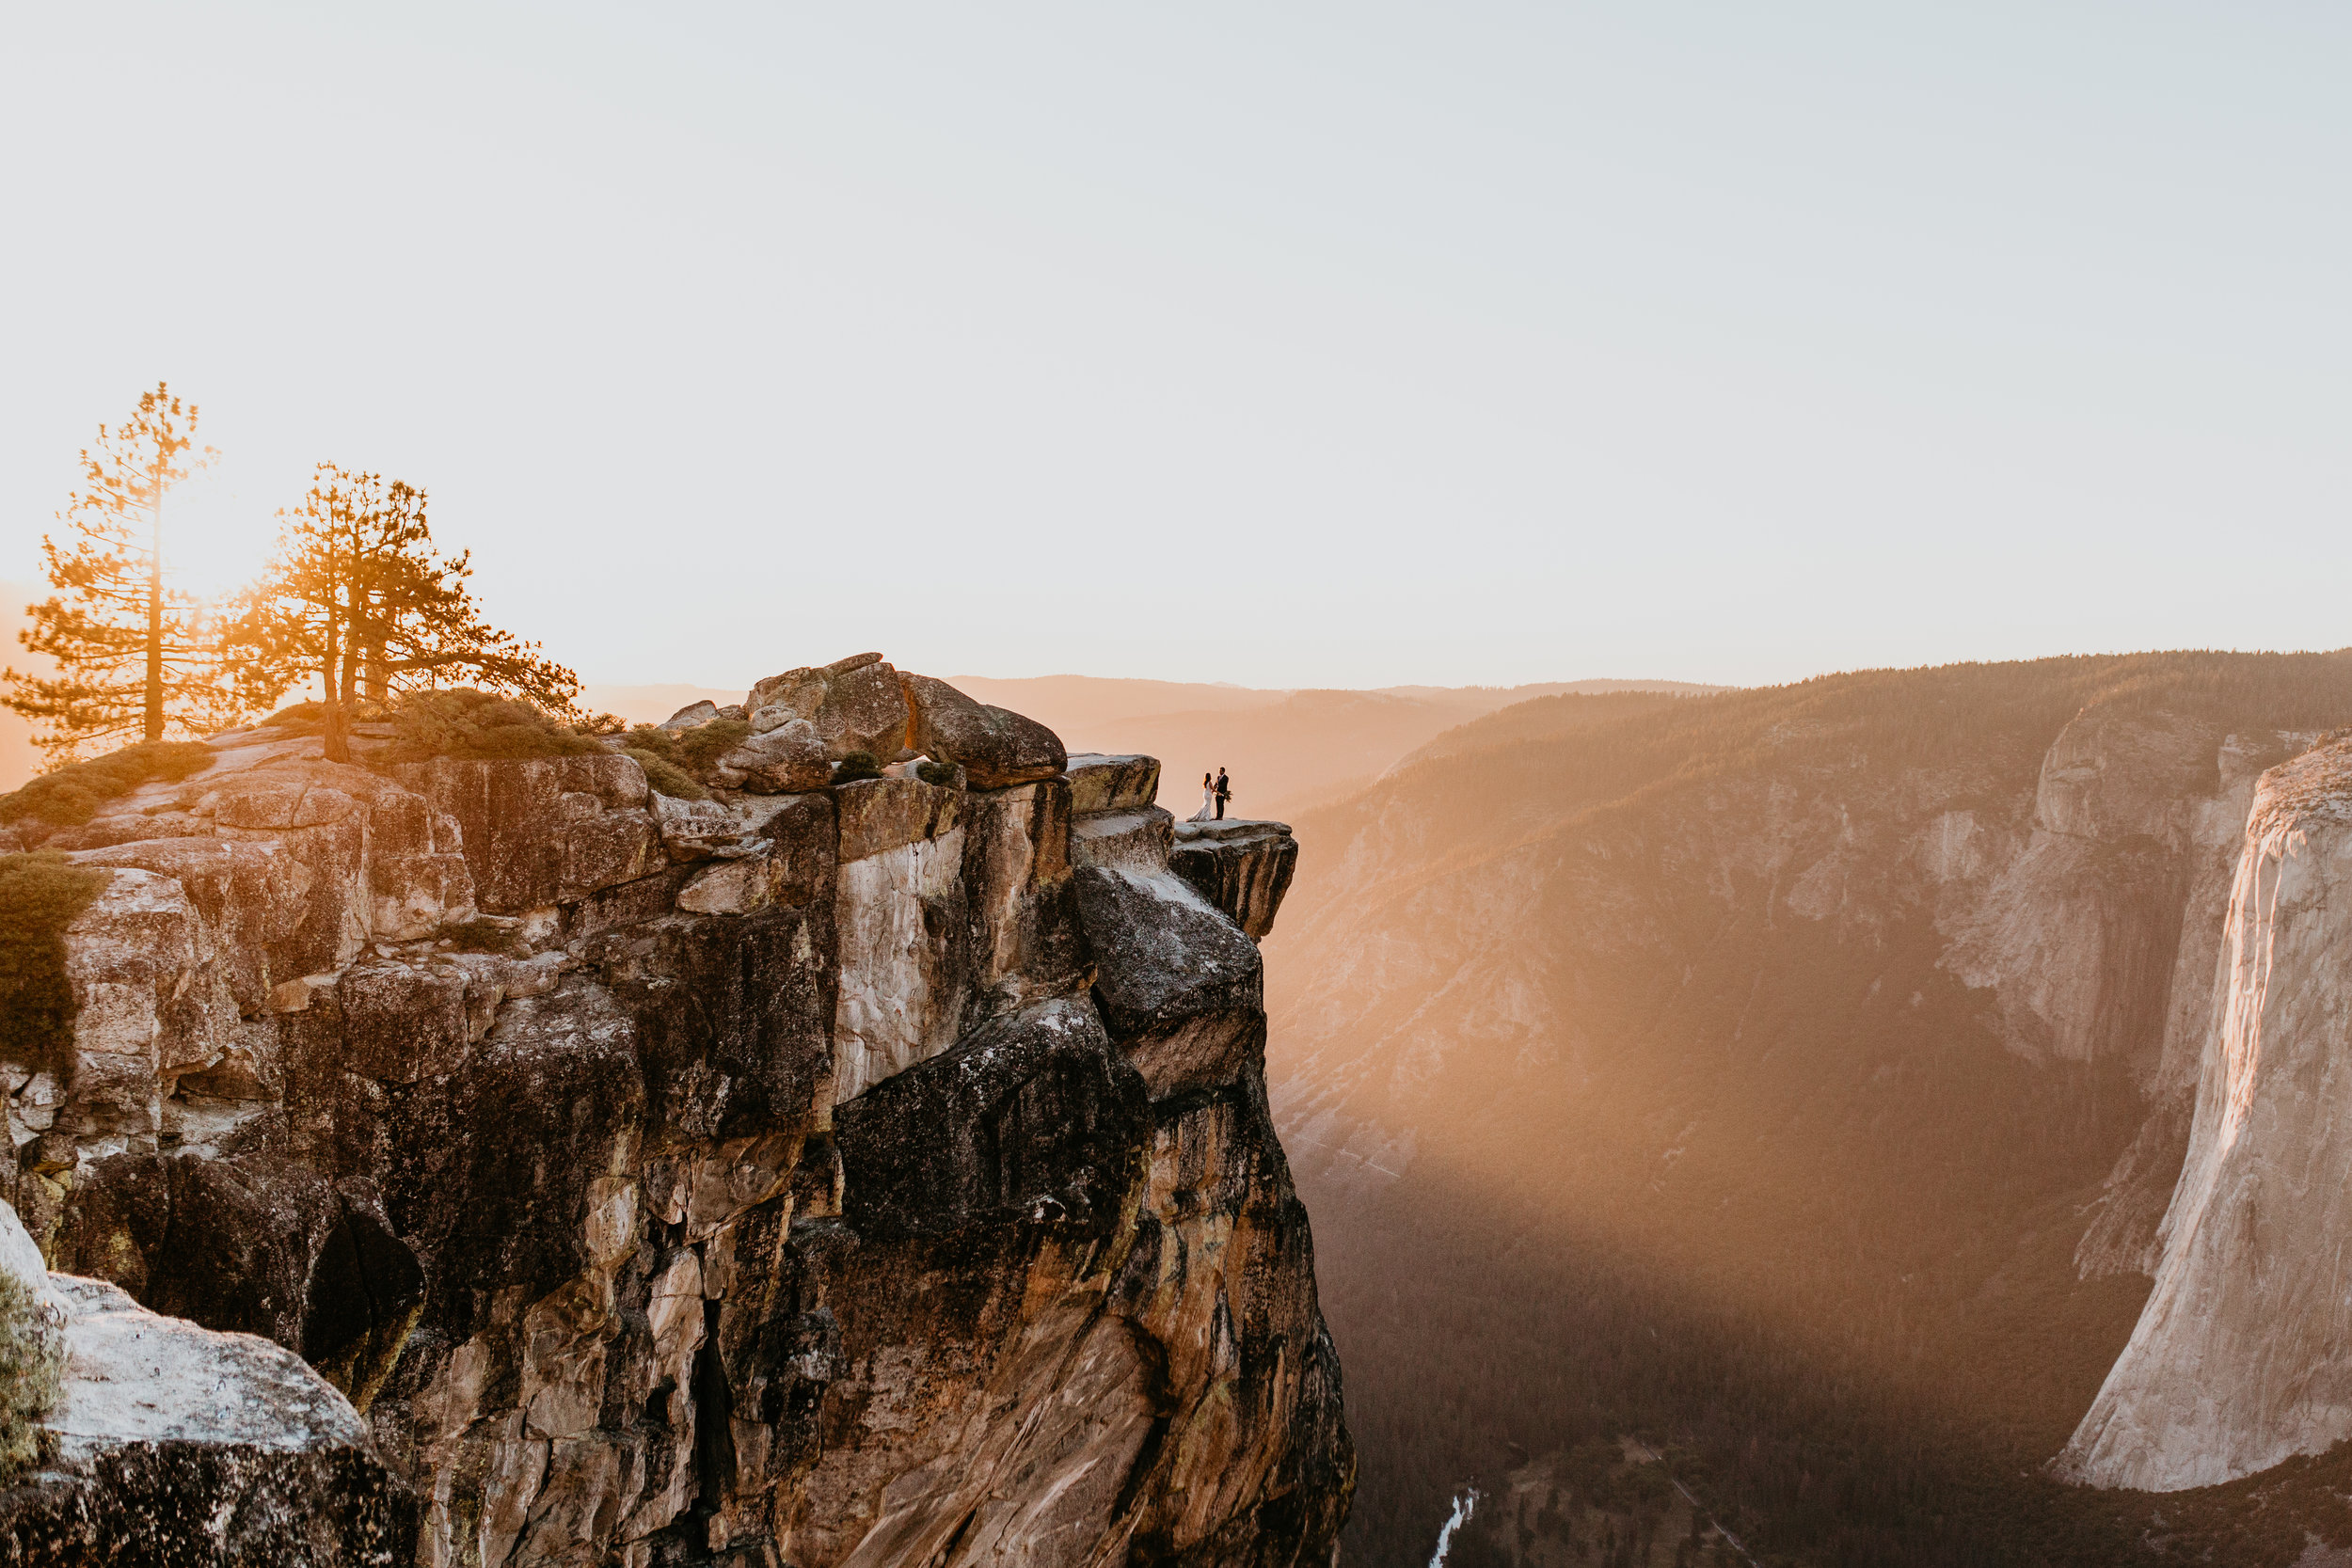 nicole-daacke-photography-intimate-elopement-wedding-yosemite-national-park-california-taft-point-sunset-photos-yosemite-valley-tunnel-view-first-look-sunrise-golden-granite-hiking-adventure-wedding-adventurous-elopement-photographer-111.jpg